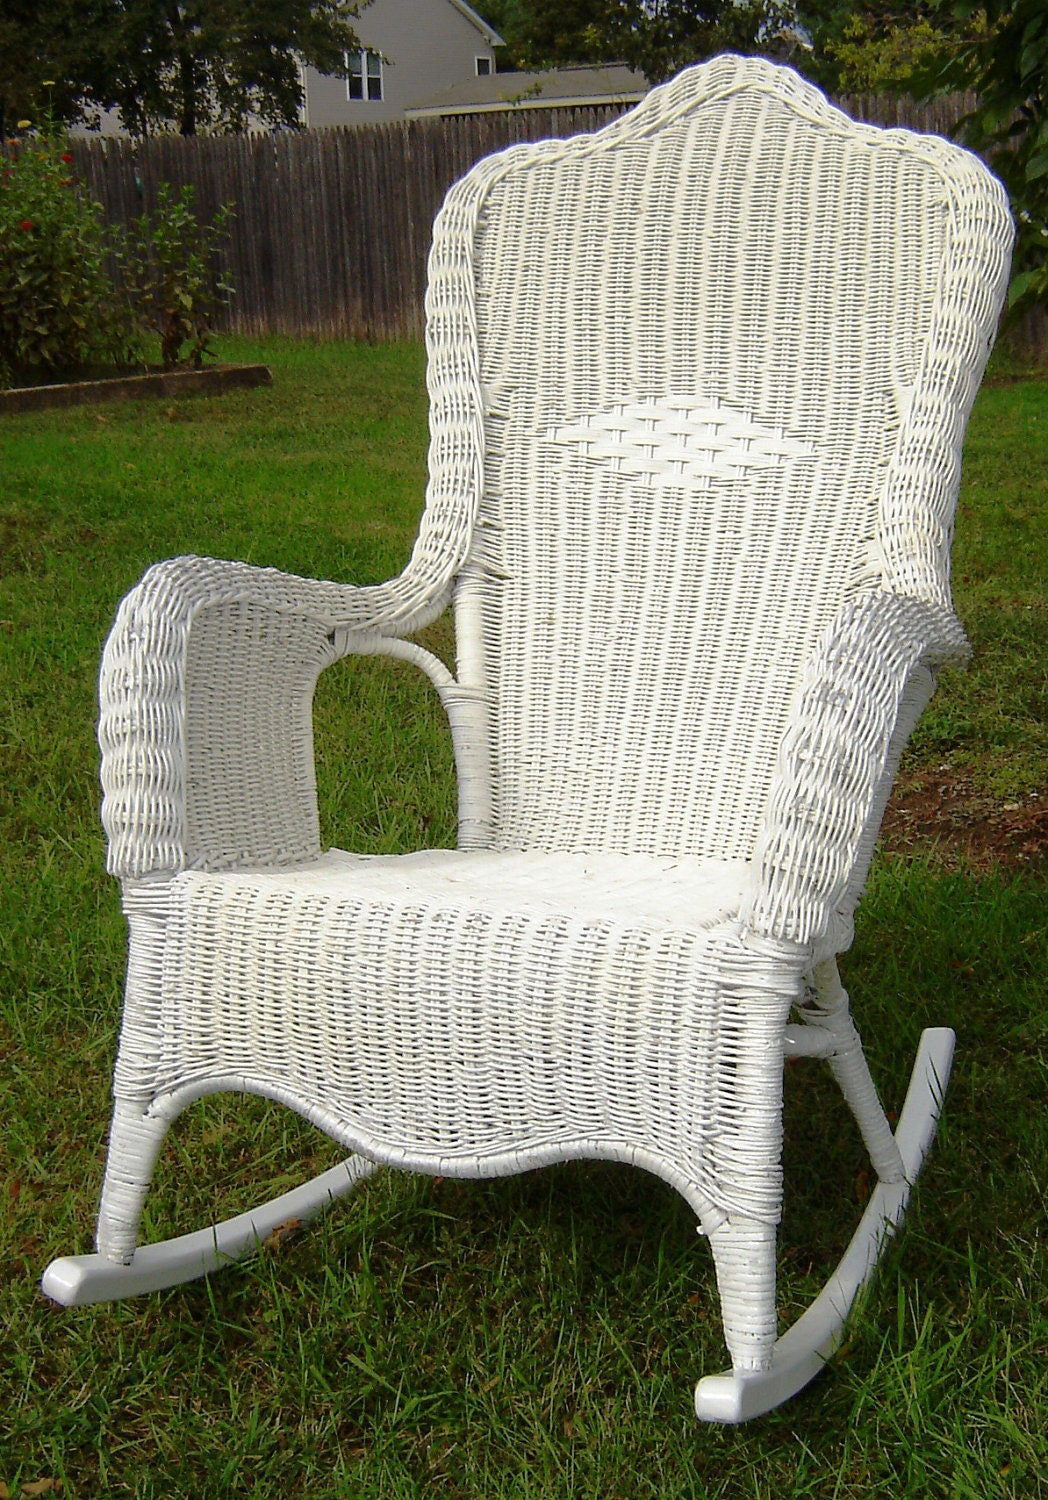 vintage white wicker rocking chair by seasidefurnitureshop on etsy. Black Bedroom Furniture Sets. Home Design Ideas